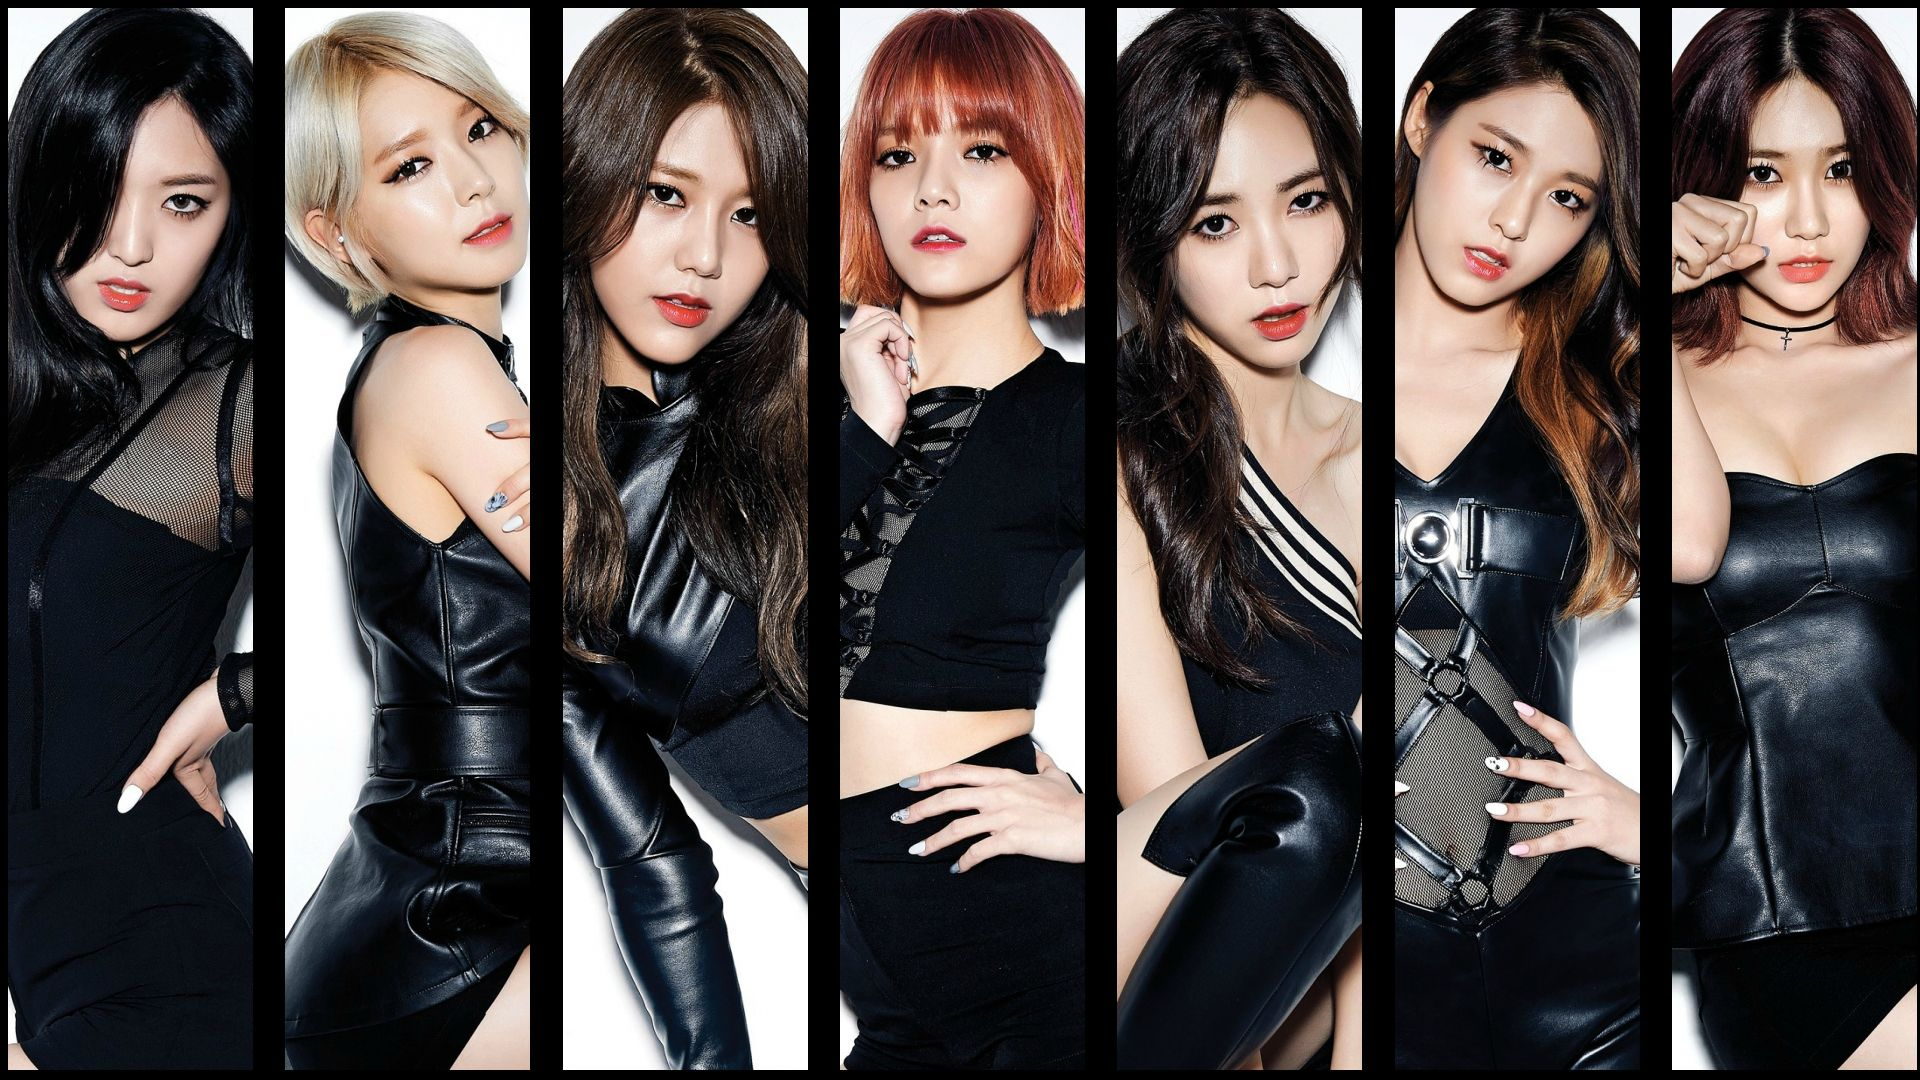 Kpop Group: AOA Profile